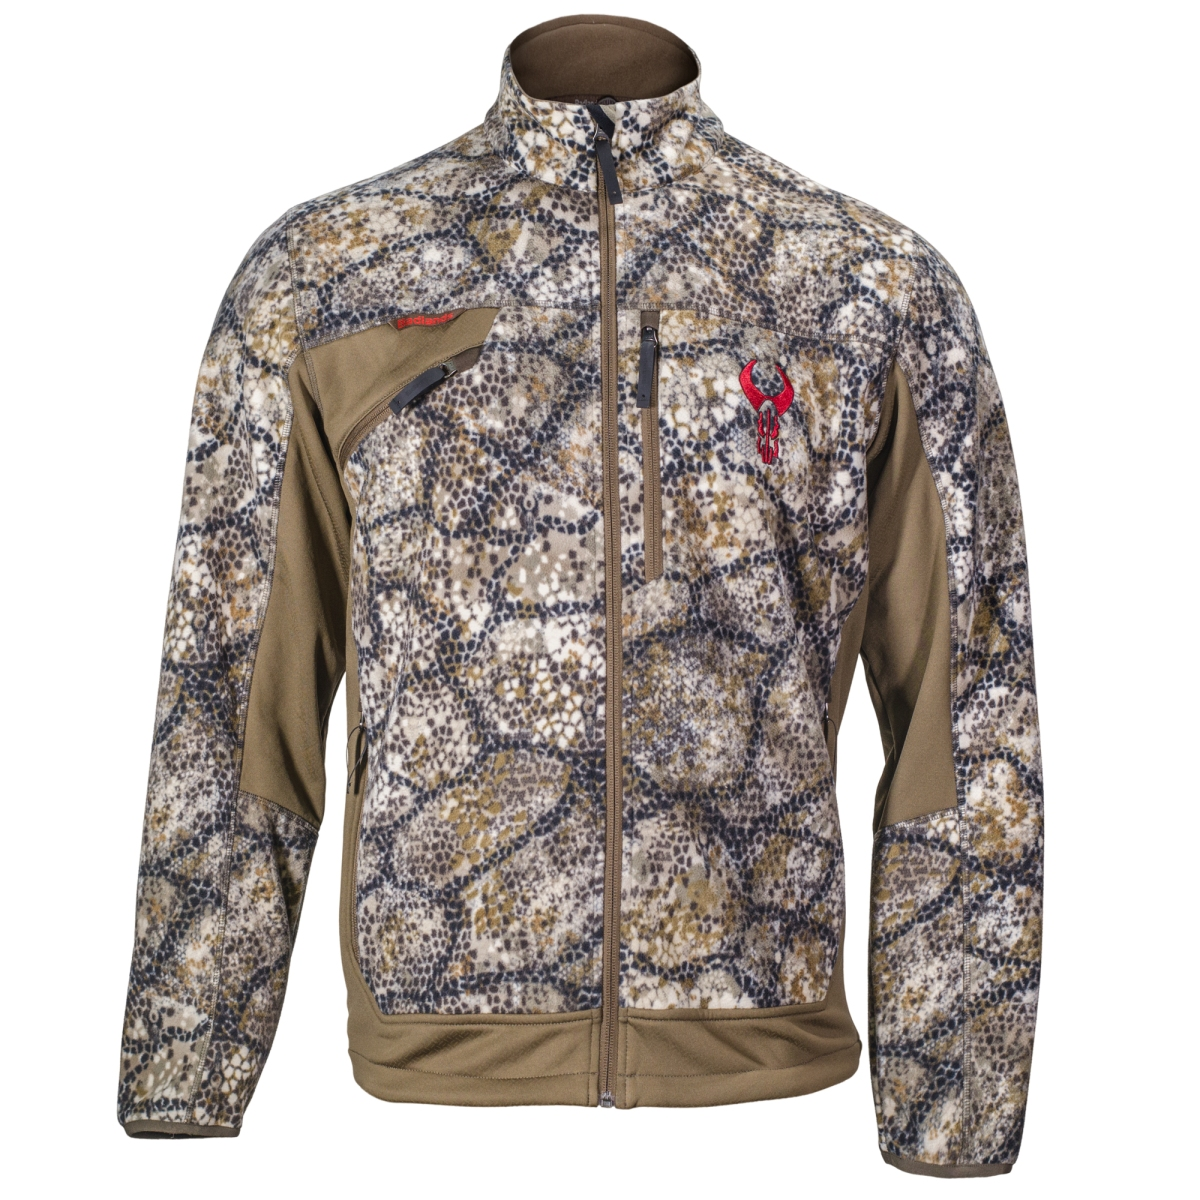 Badlands Releases New Approach FX Camouflage and All-New Apparel Line